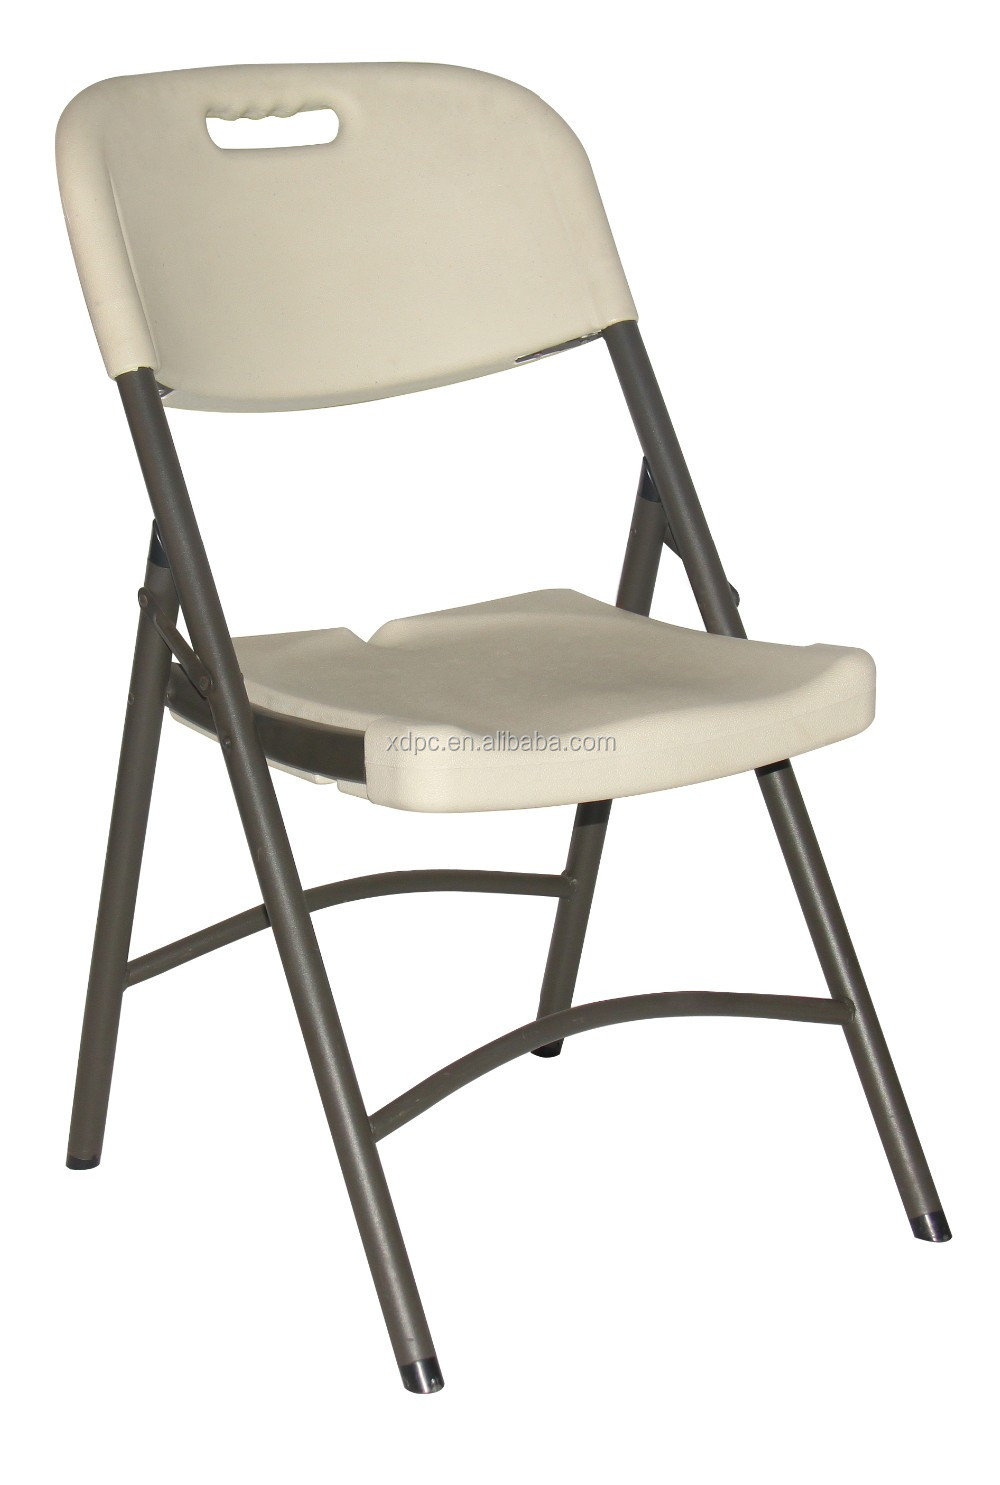 Hdpe Cheap Plastic Folding Chairs Buy Cheap Plastic Folding Chairs White Ga